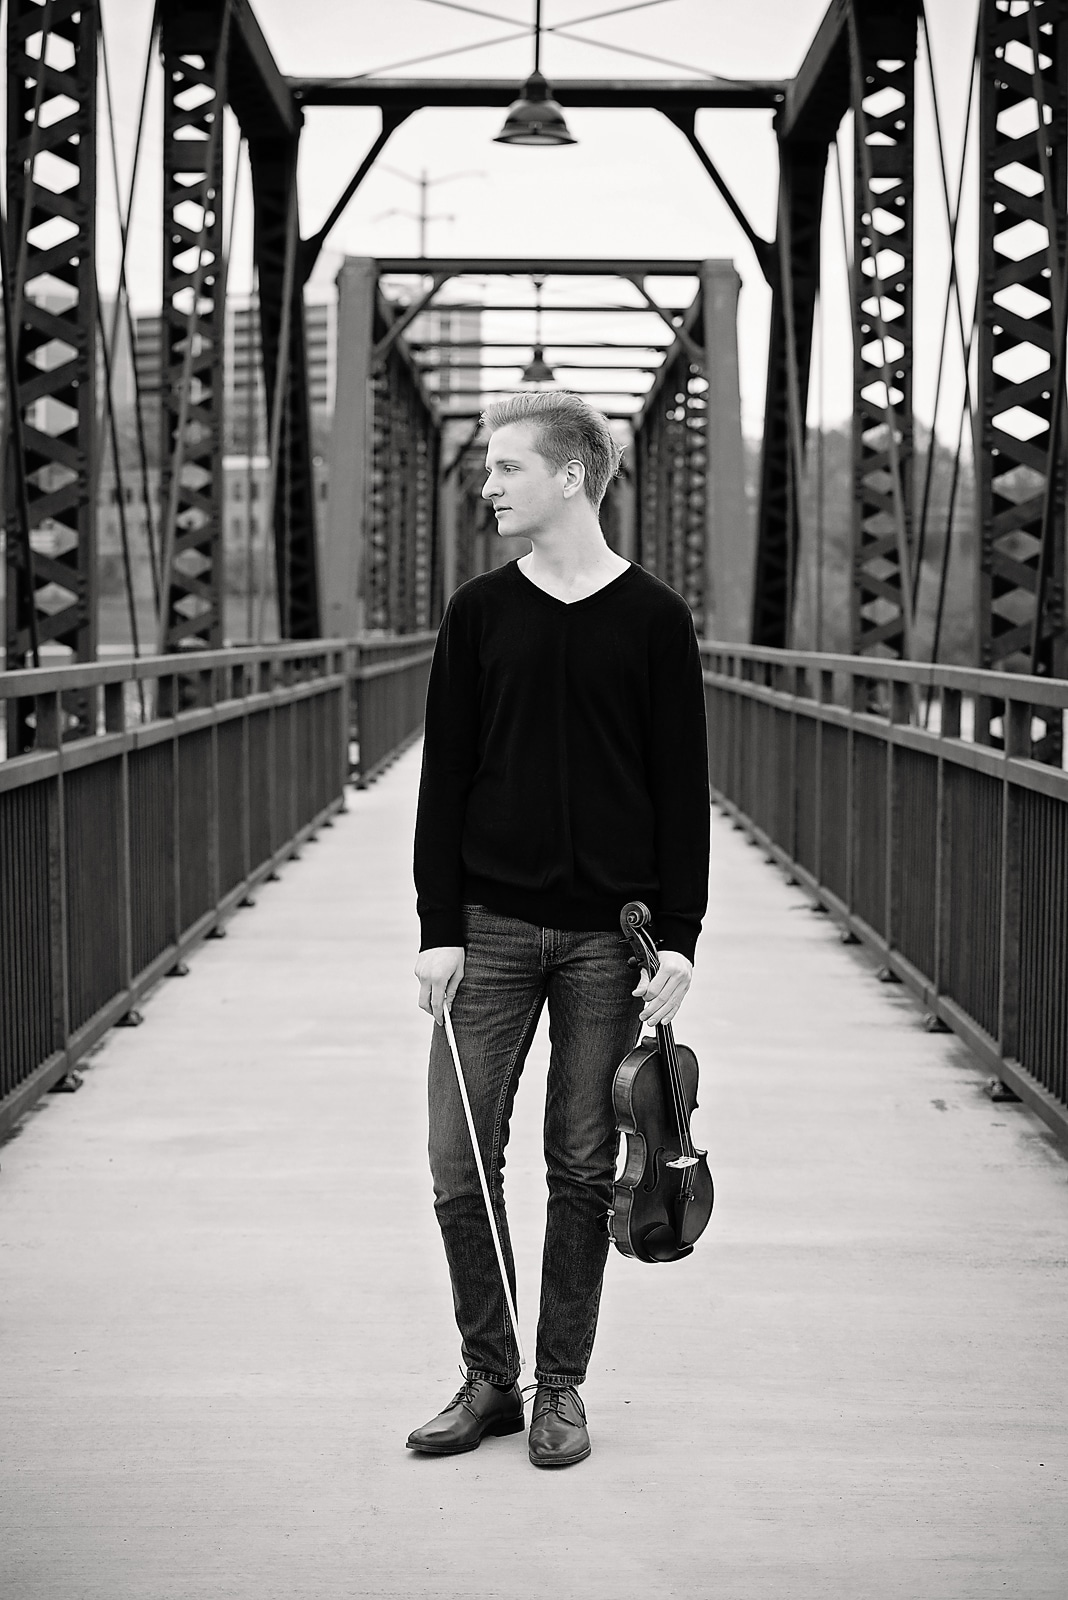 Musical Instrument Senior Photos